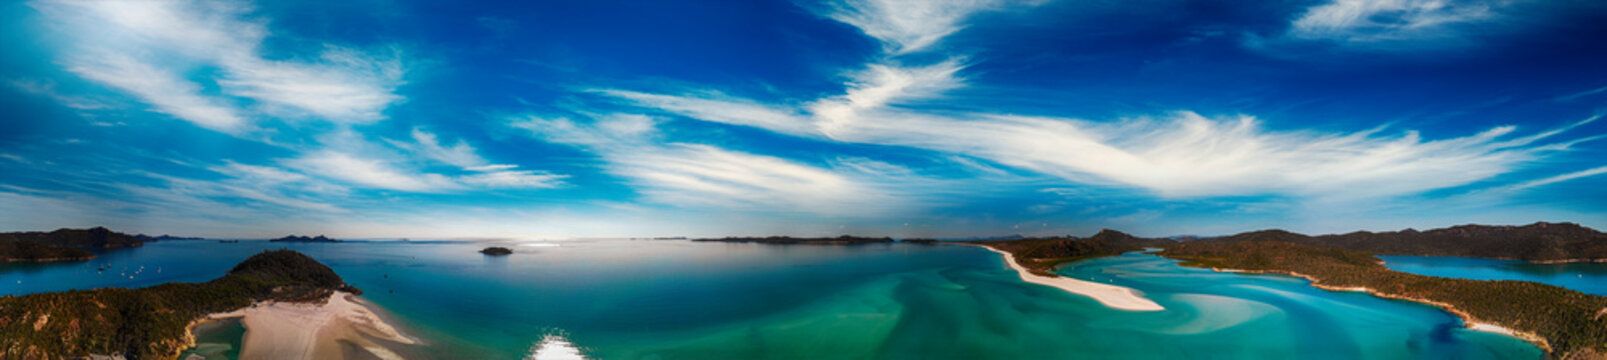 Whitehaven Beach, Queensland. Sunset panoramic aerial view from drone prospective